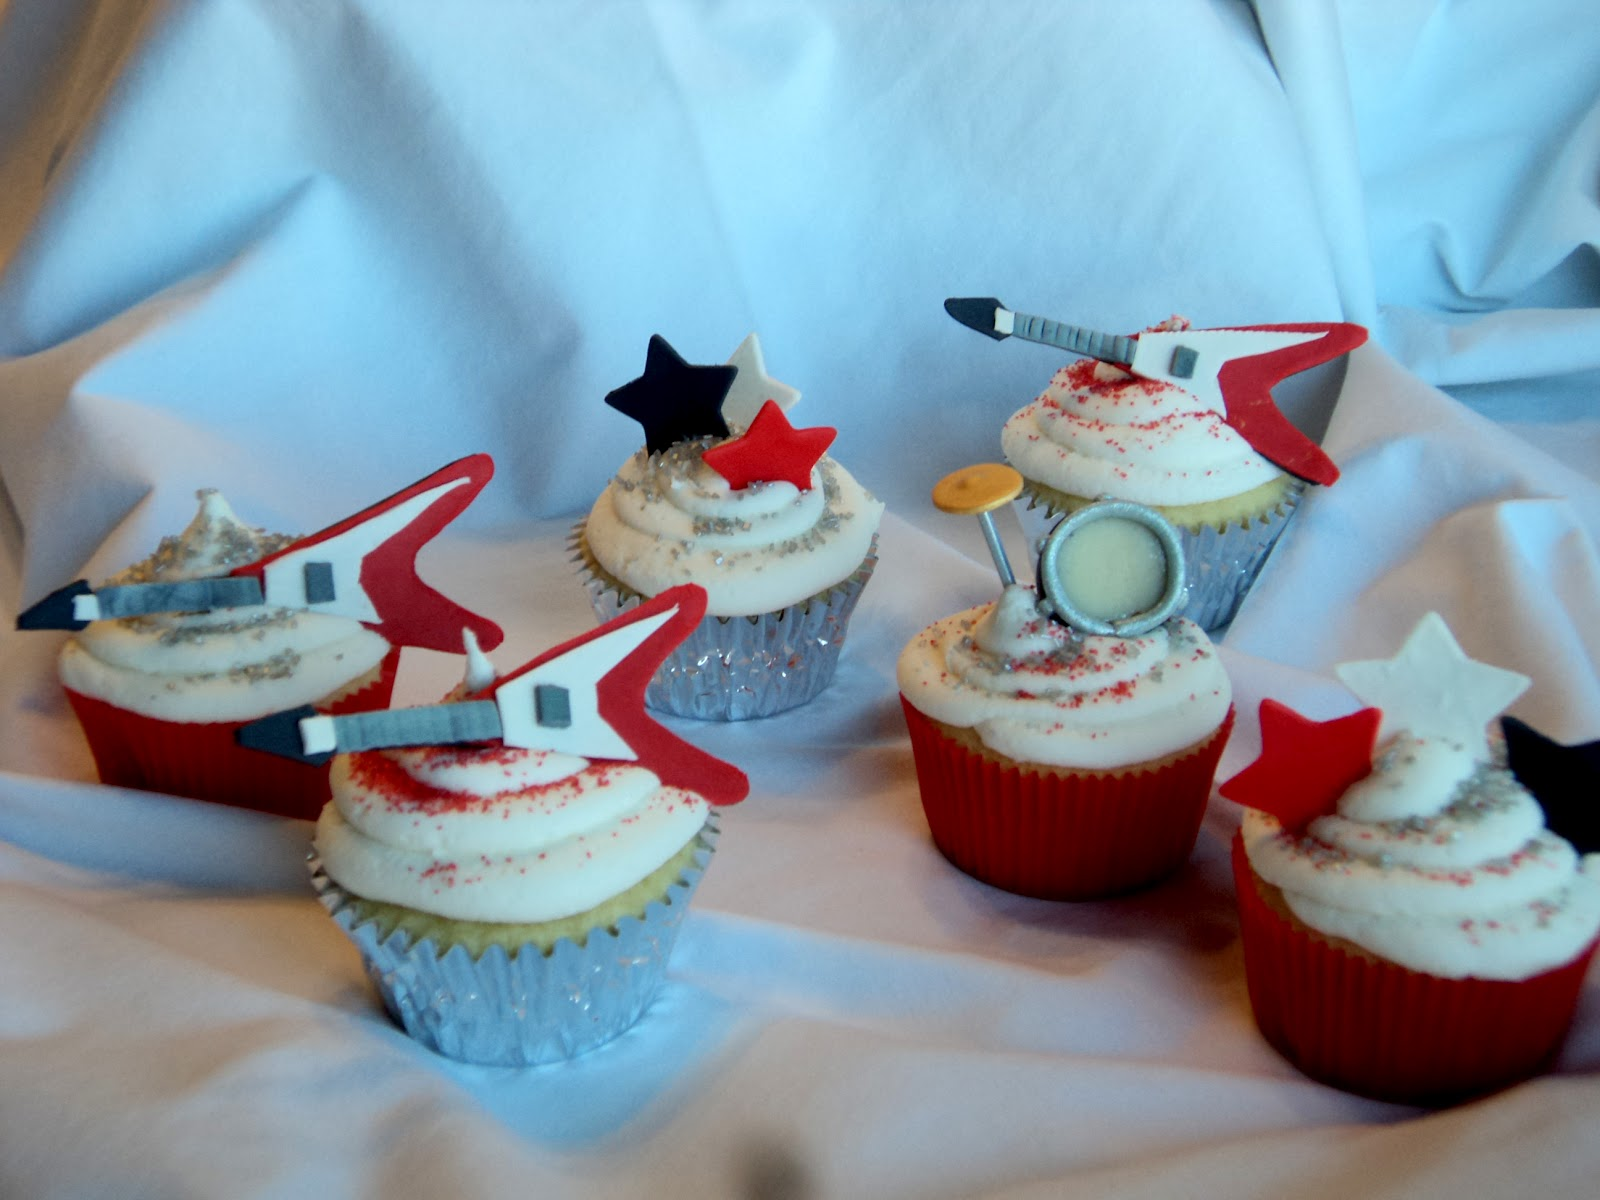 Delectable cakes rock and roll birthday cupcakes rock and roll birthday cupcakes freerunsca Images